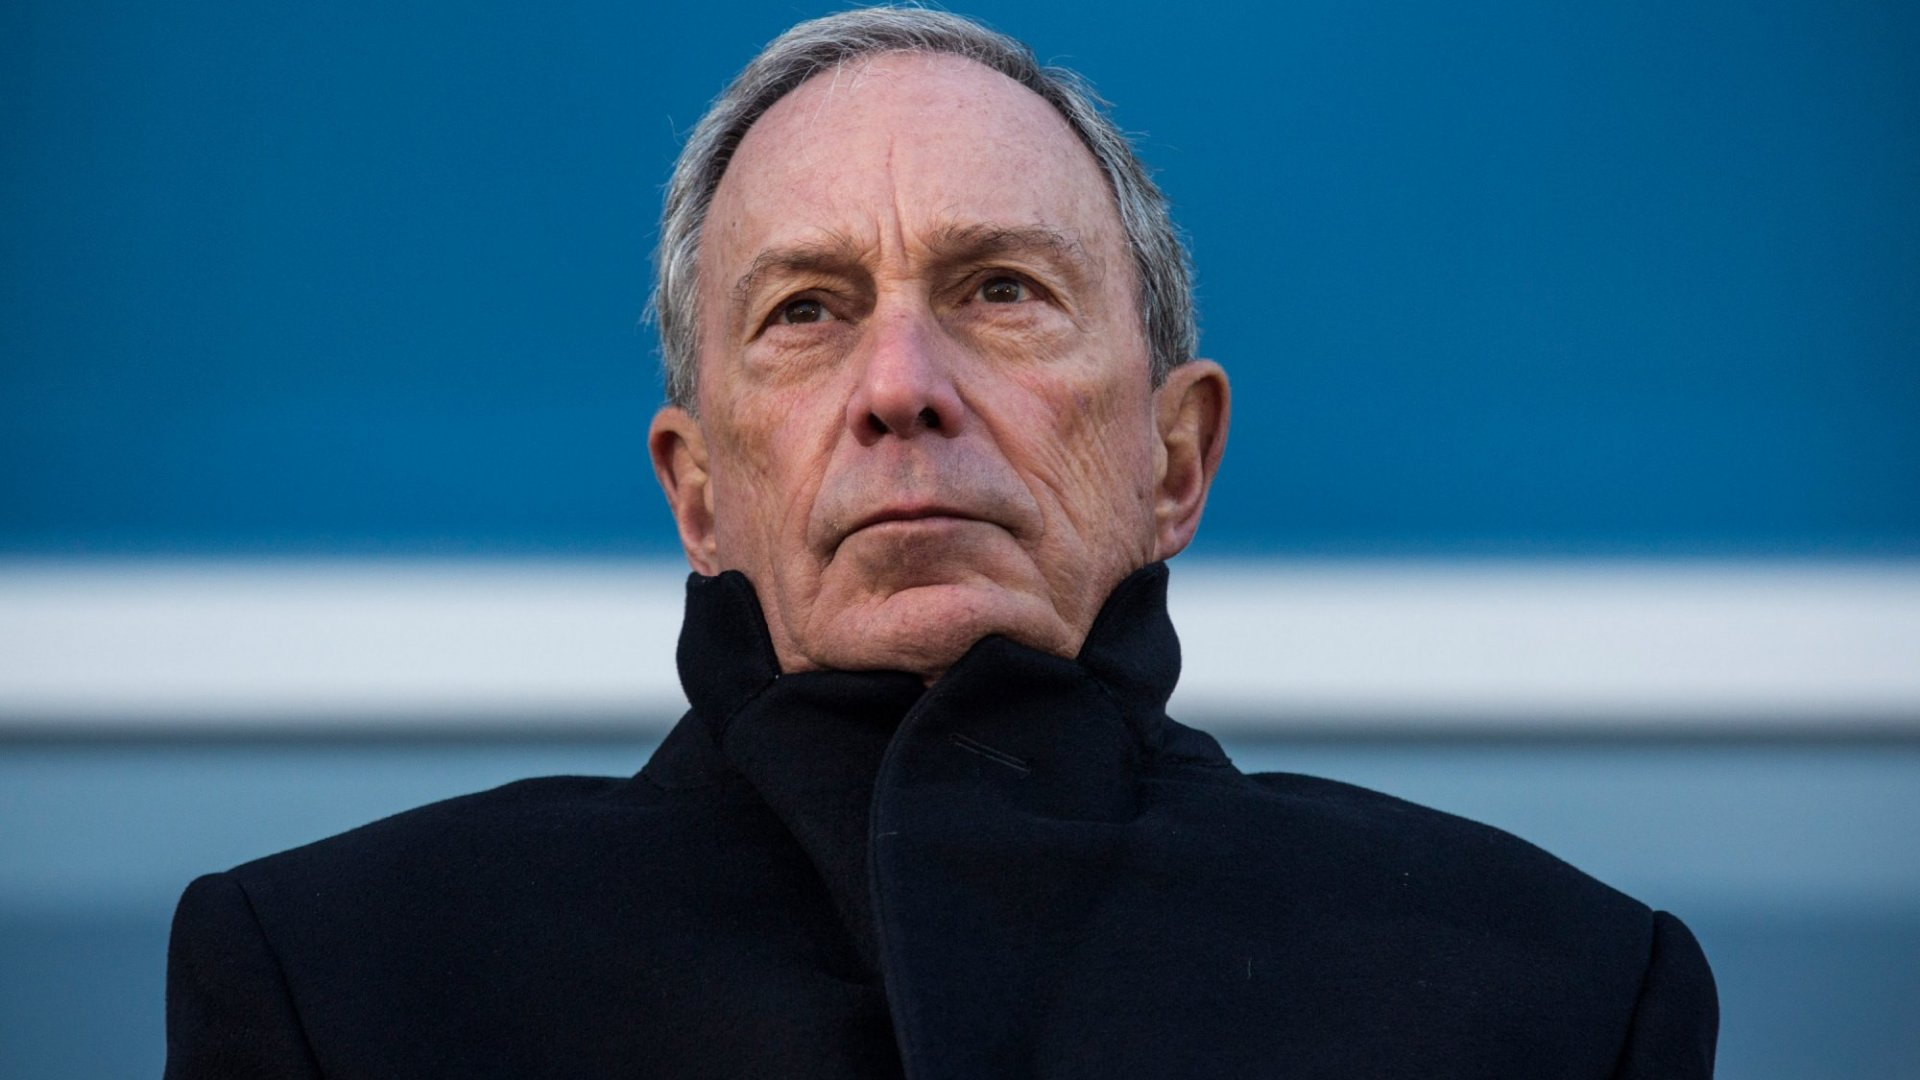 Former NYC Mayor Michael Bloomberg's initiative What Works Cities will encompass 100 mid-sized American cities over three years.